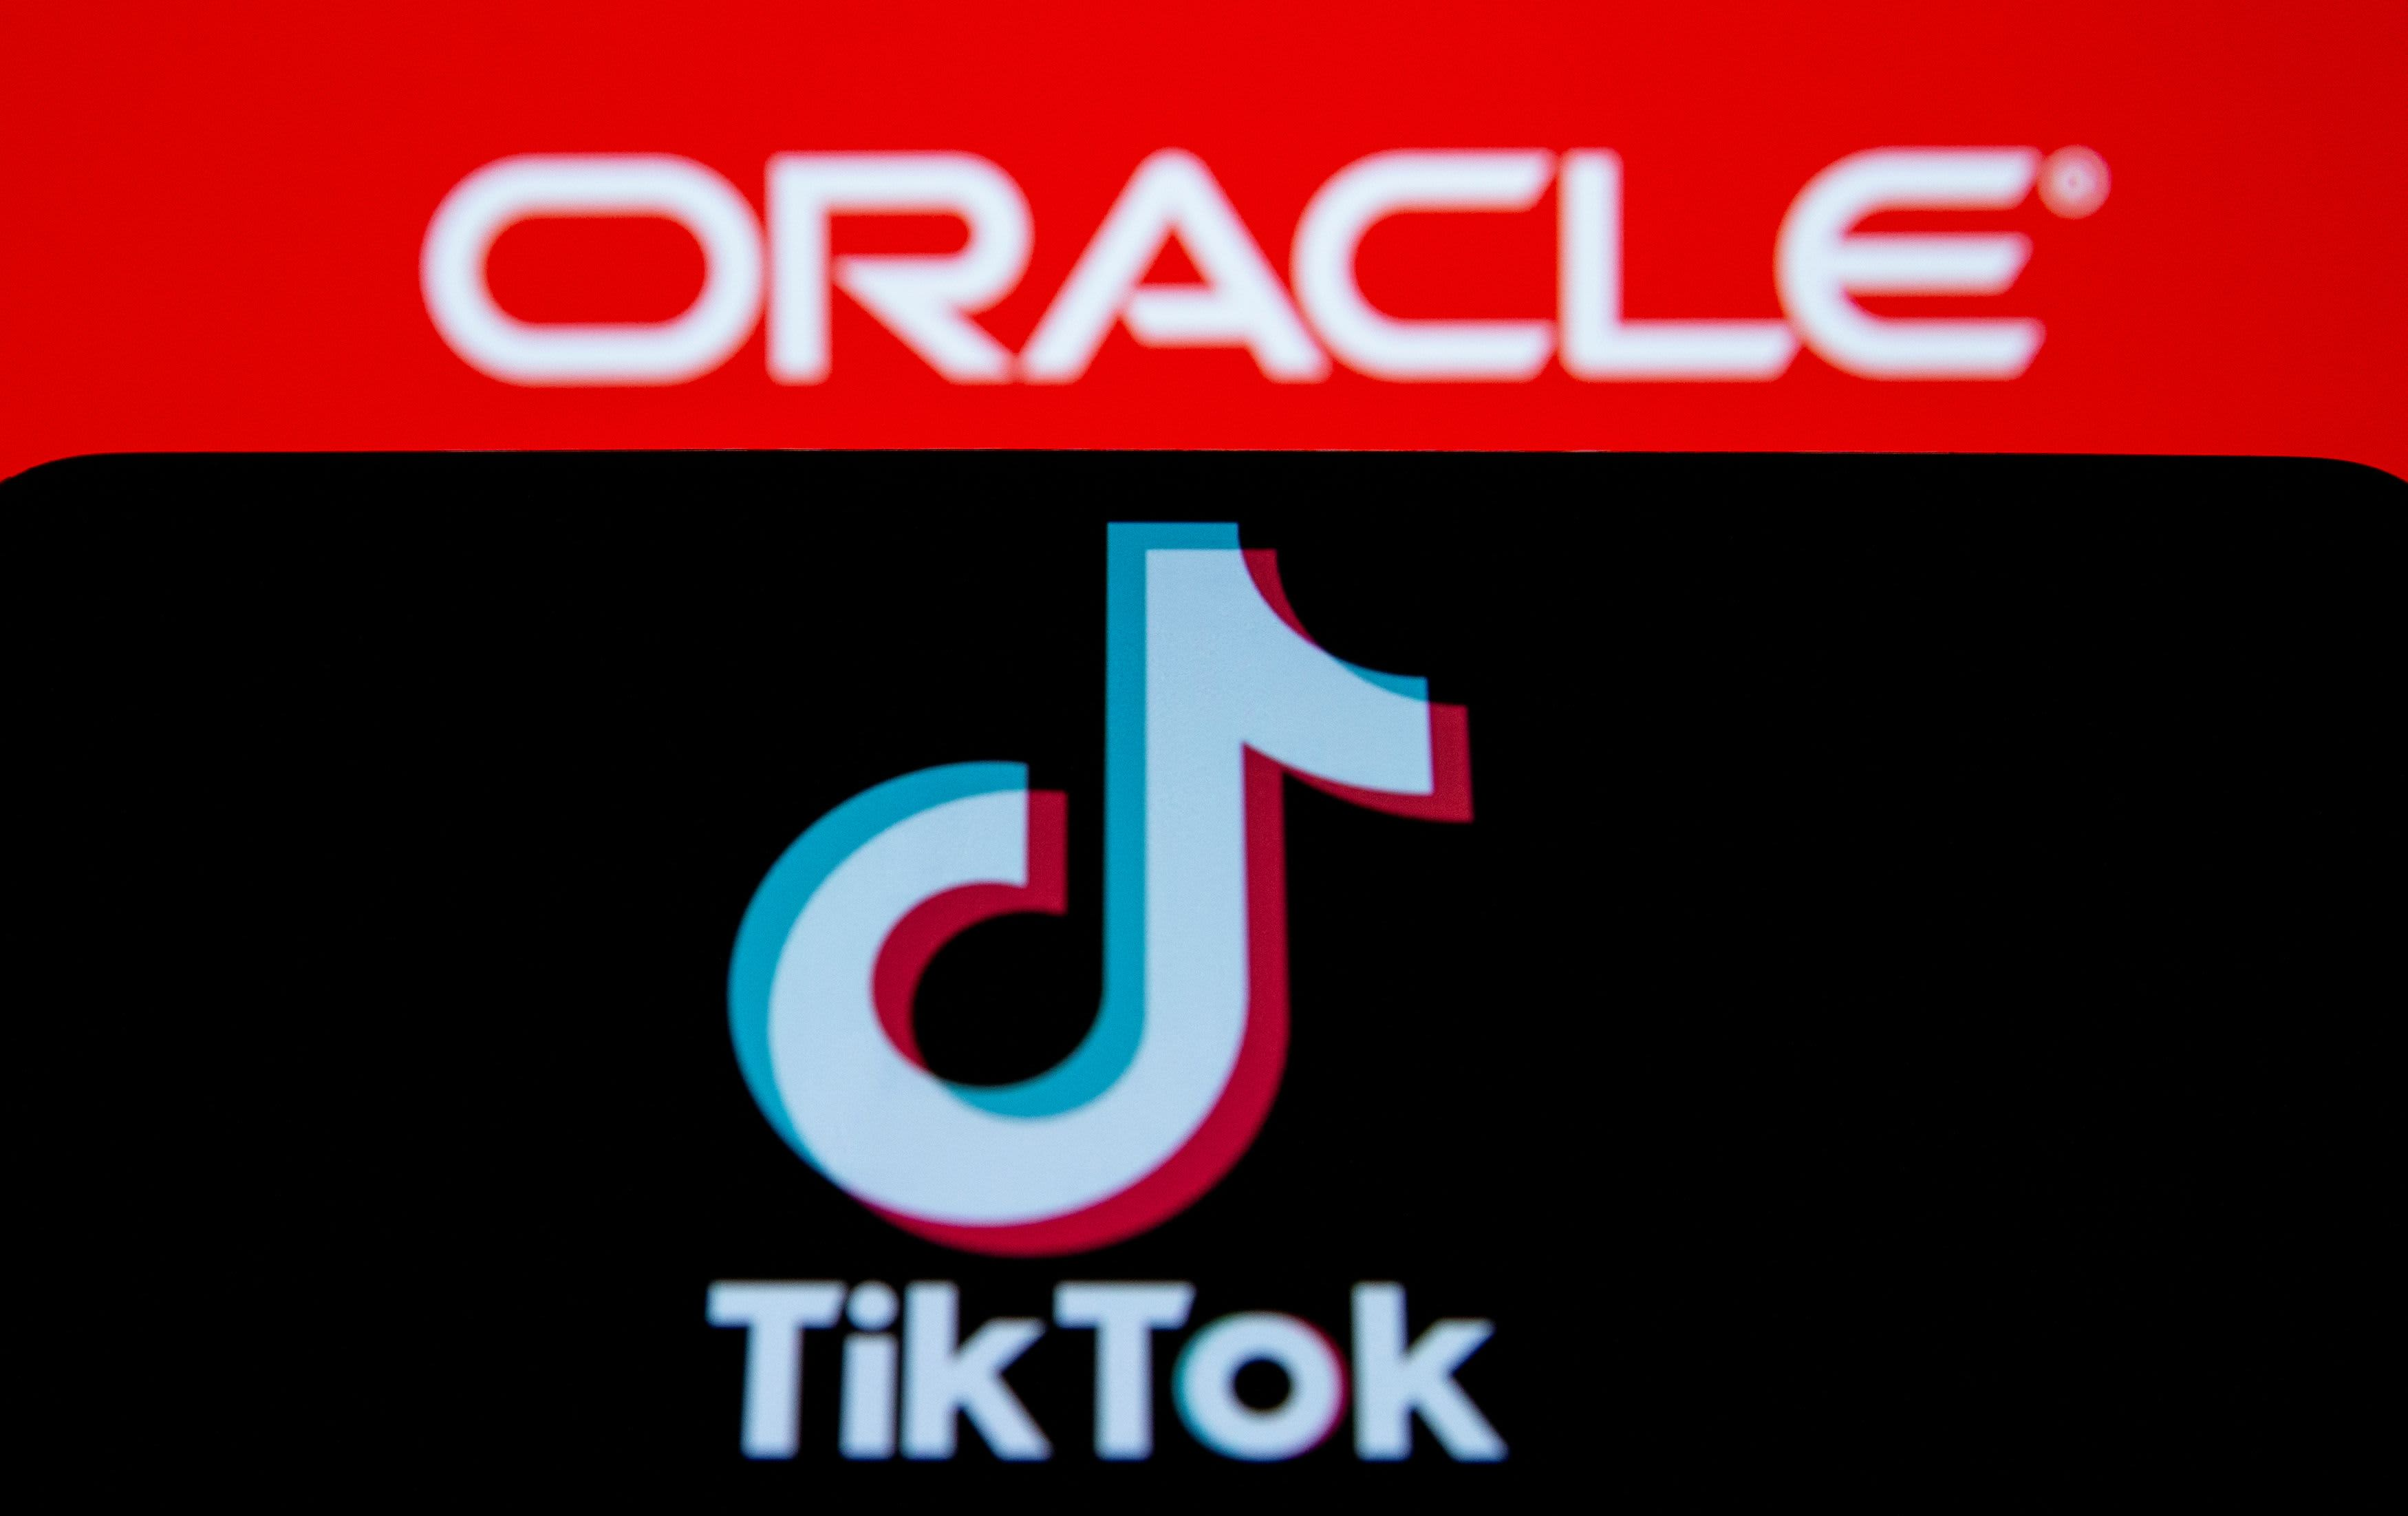 Trump agrees to TikTok deal with Oracle and Walmart, allowing app's U.S. operations to continue